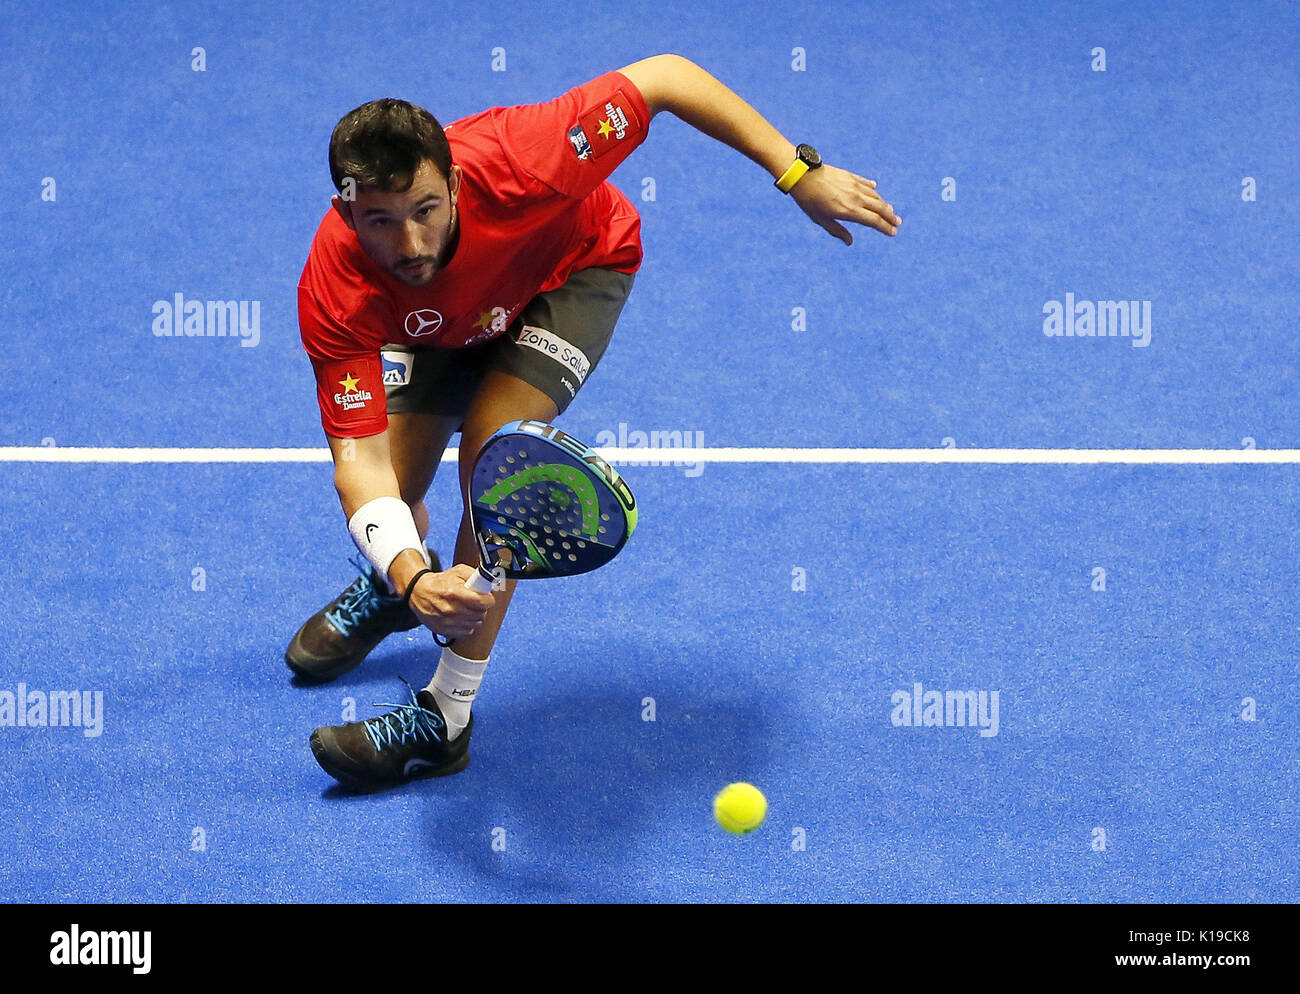 Padel player Daniel Gutierrez 'Sanyo' in action during the Alicante Open 2017 men's semifinal, the sixth event of the professional circuit World Padel Tour, in Alicante, Spain, 26 August 2017. EFE/Manuel Lorenzo - Stock Image